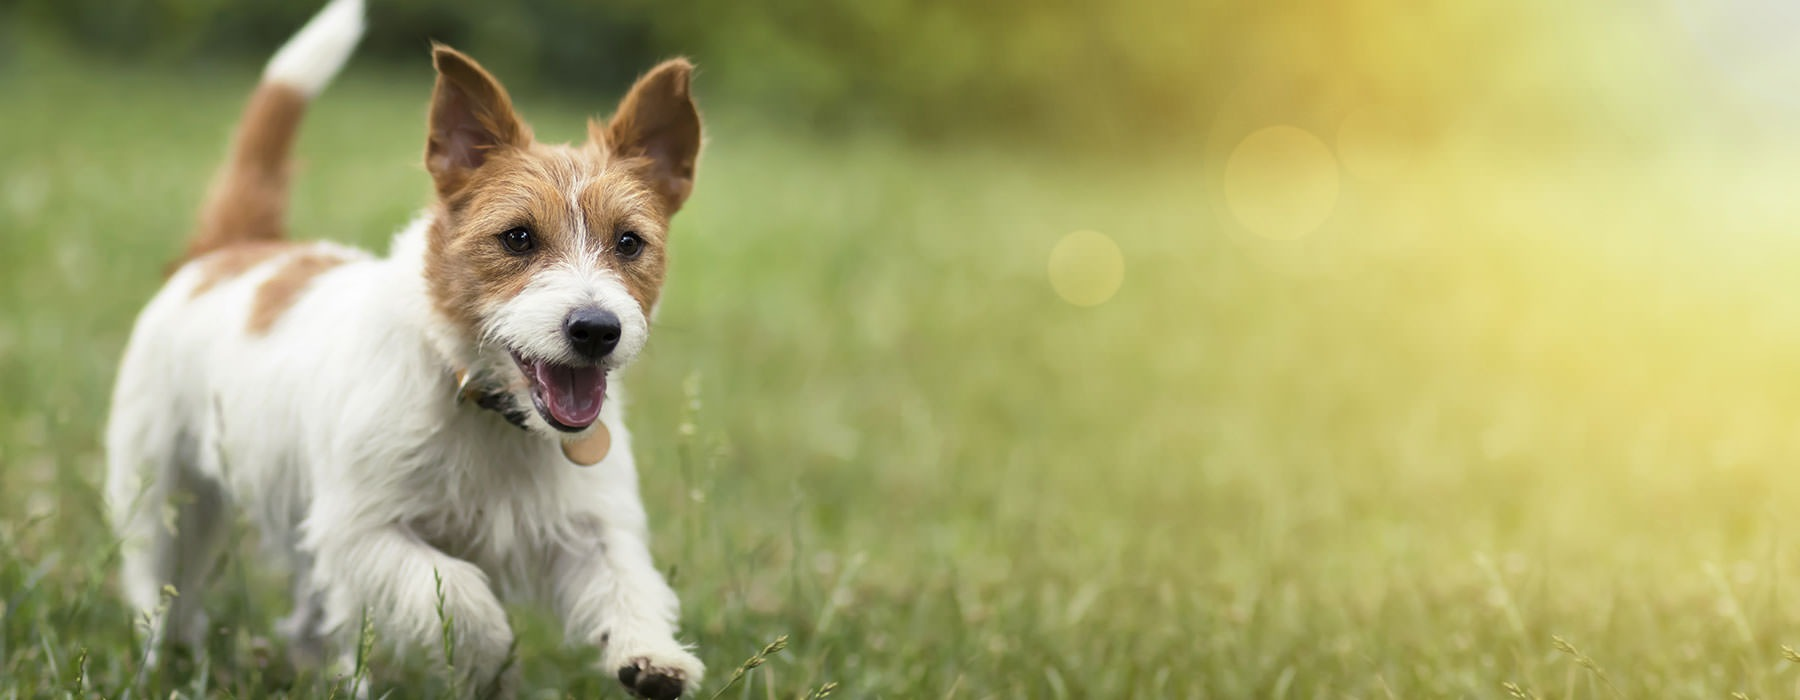 lifestyle image of a dog running through the grass